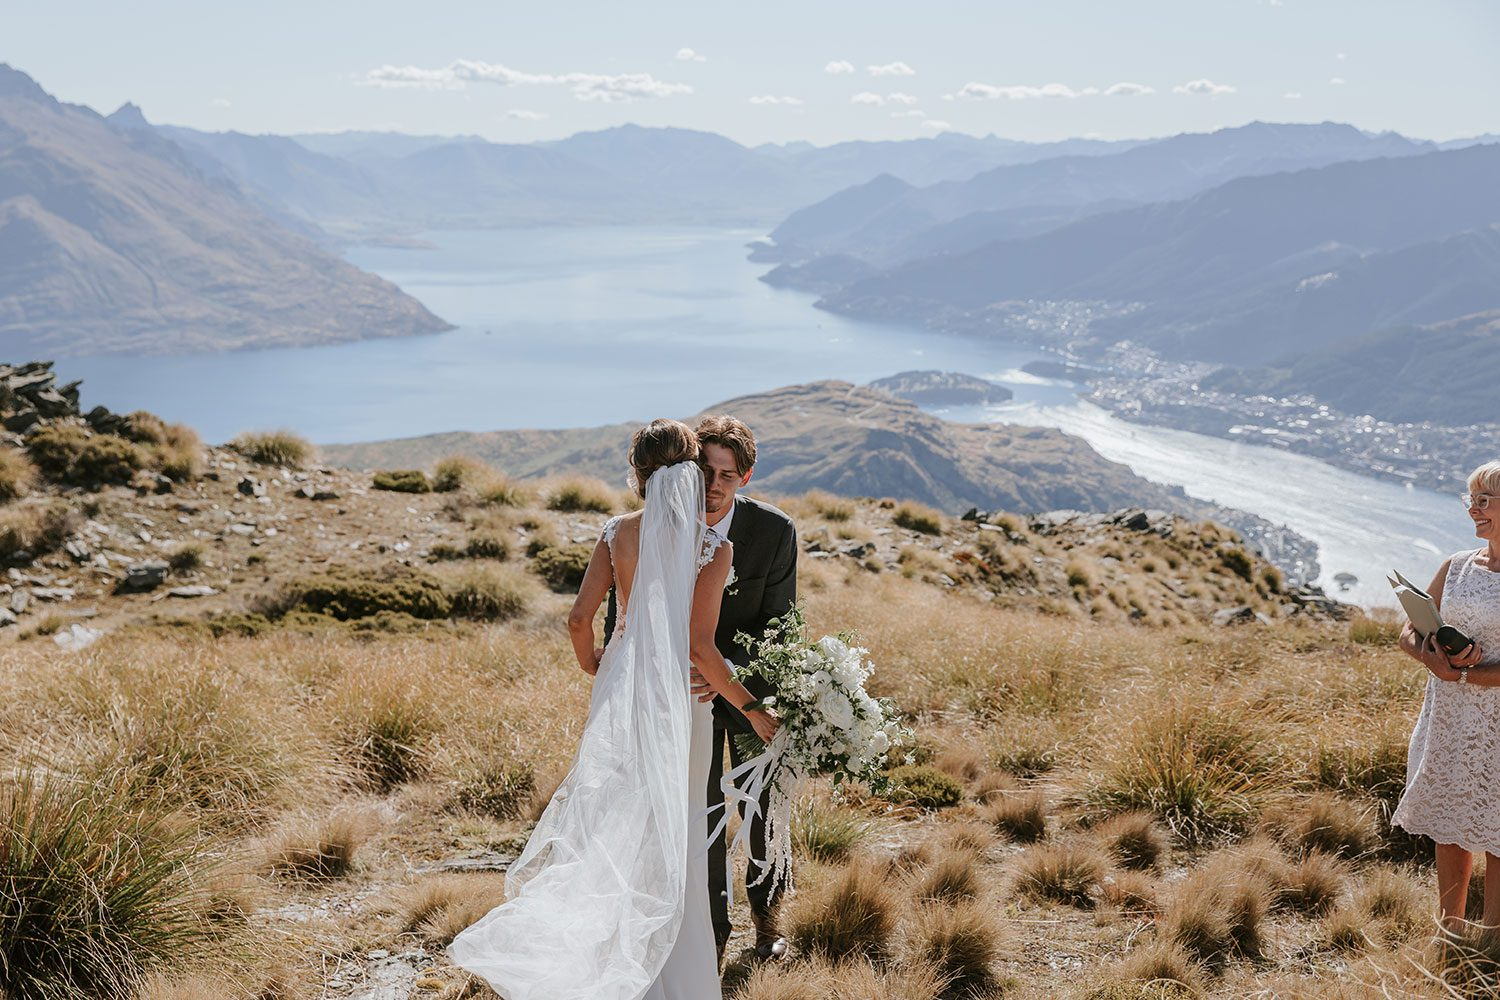 Bride wearing bespoke bridal gown with richly beaded lace over sheer tulle bodice and low back from Auckland wedding dress designer Vinka designs - meeting groom on hill long shot